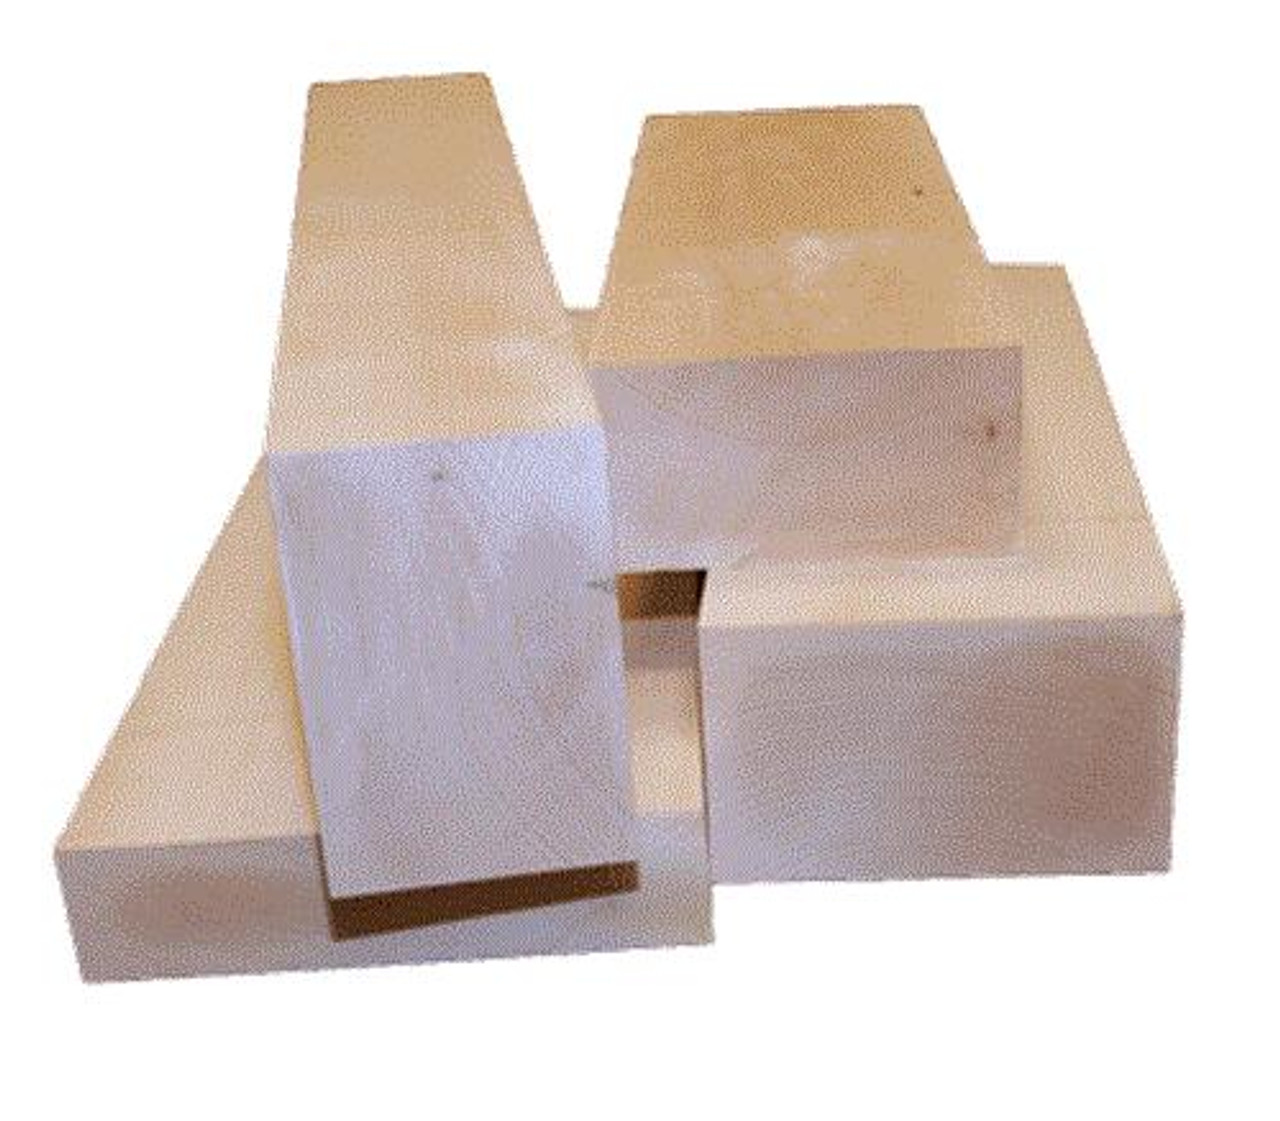 Cherry Tree Toys Basswood Carving Blank 4 x 6 x 18